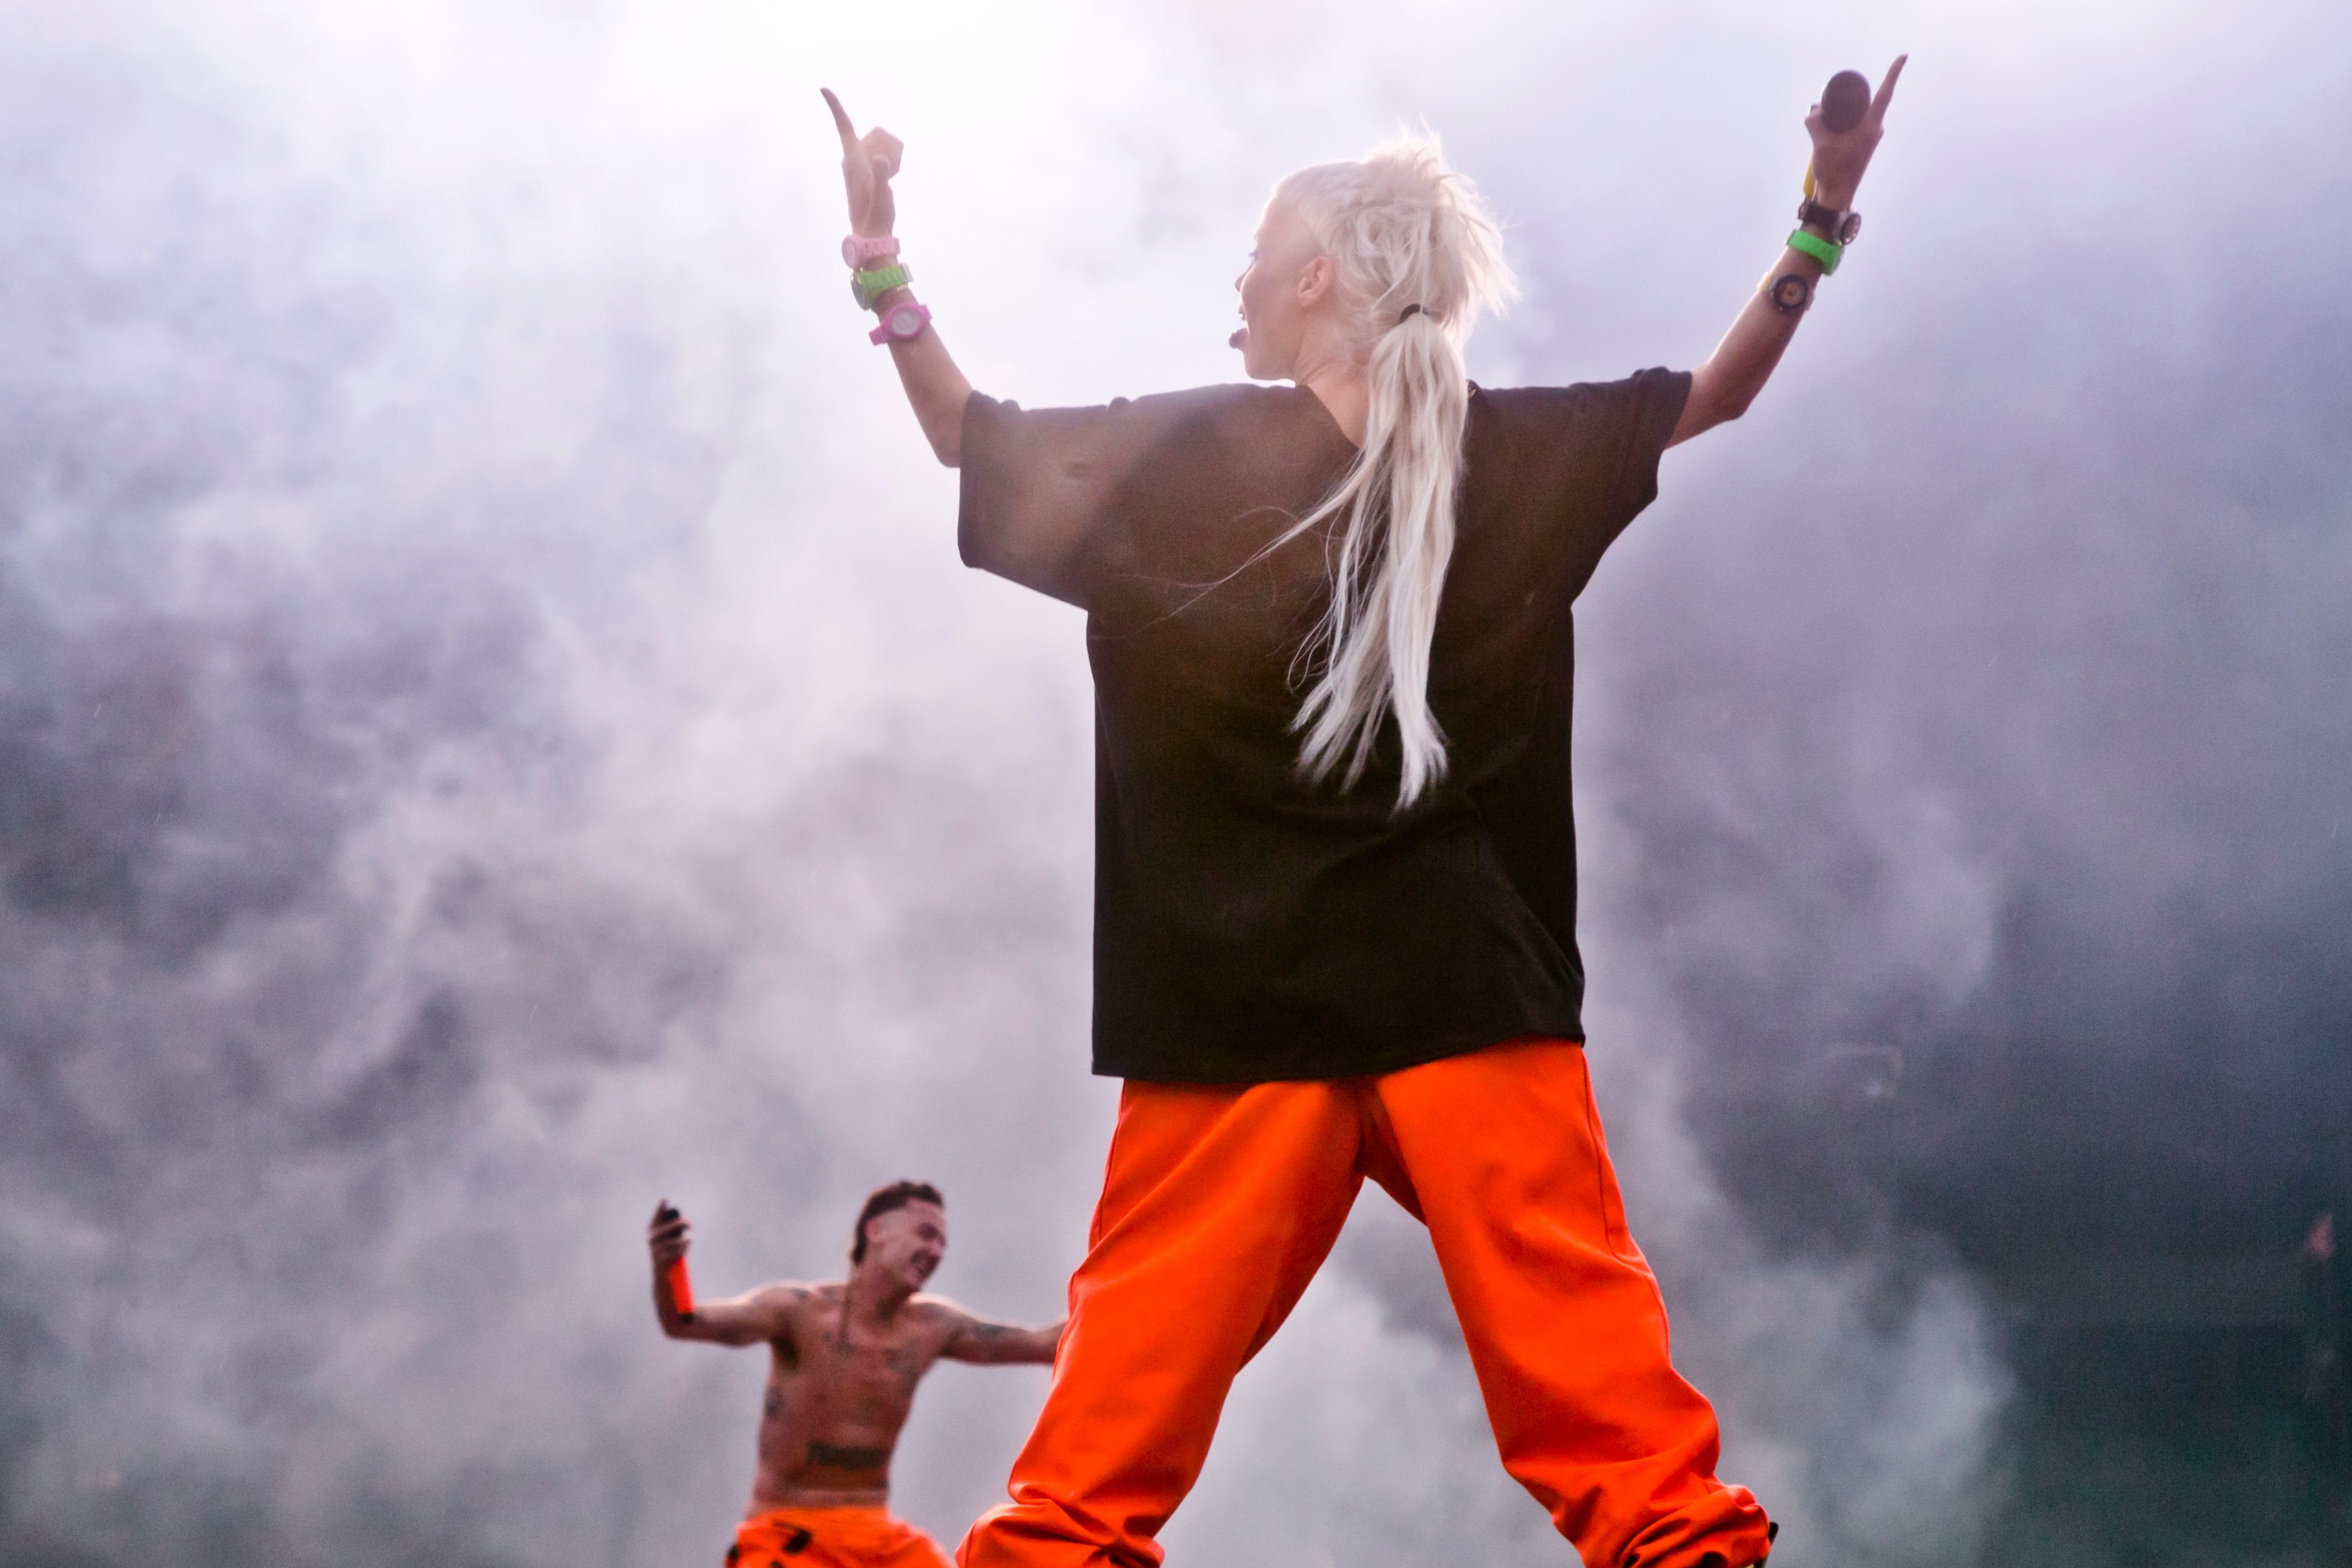 Die Antwoord at Sziget Festival, Budapest, Hungary - 10 August 2016